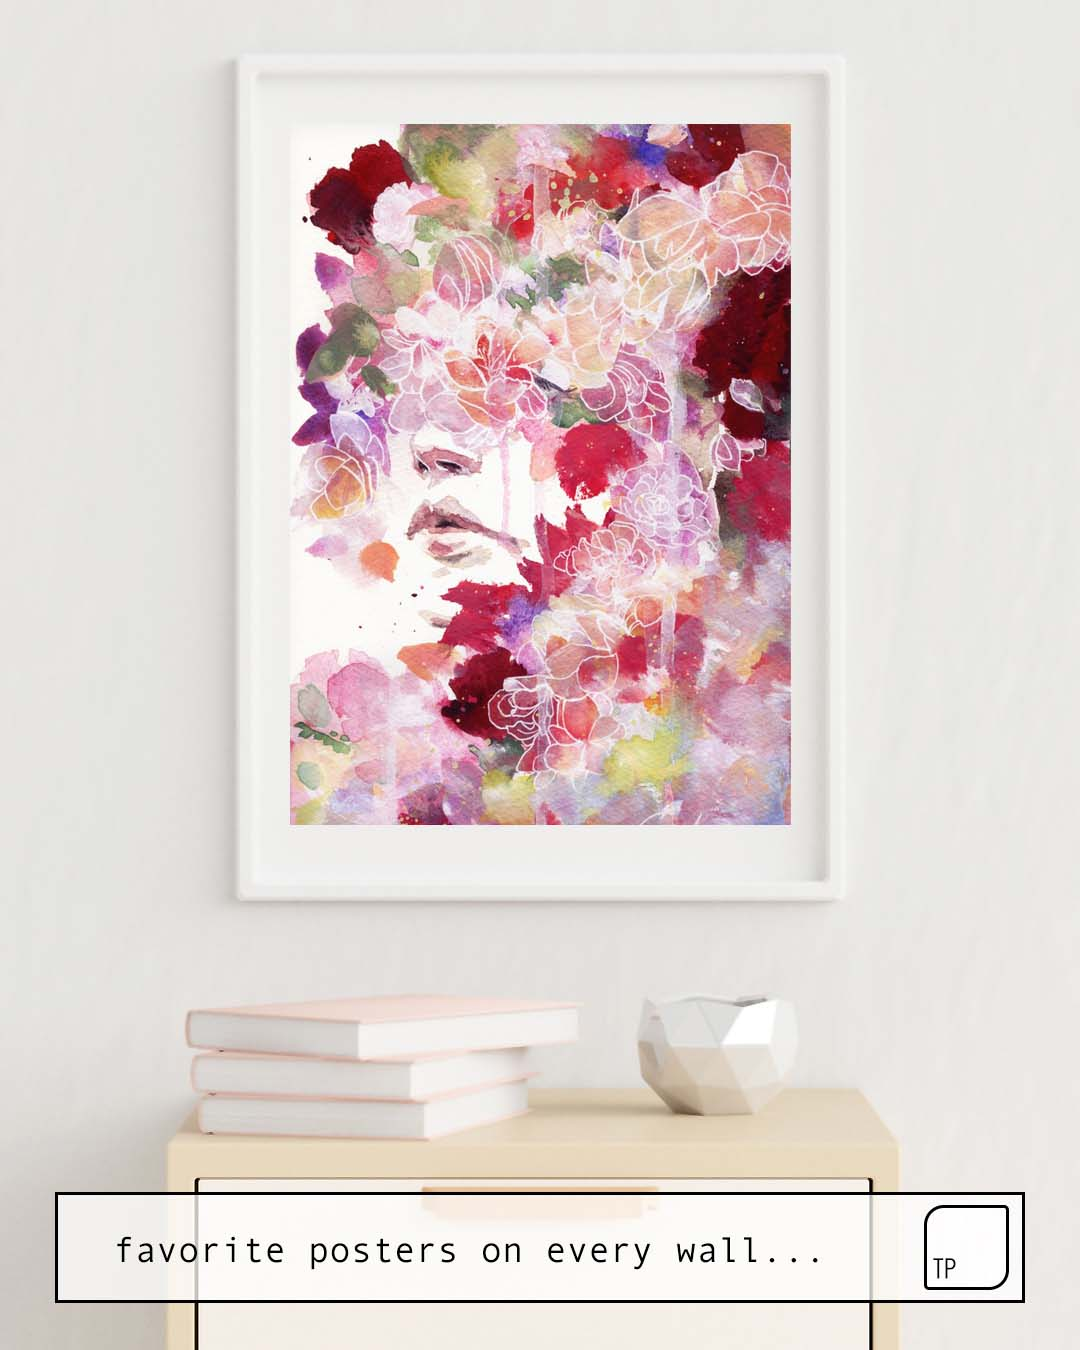 The photo shows an example of furnishing with the motif GARDEN IV by Agnes Cecile as mural